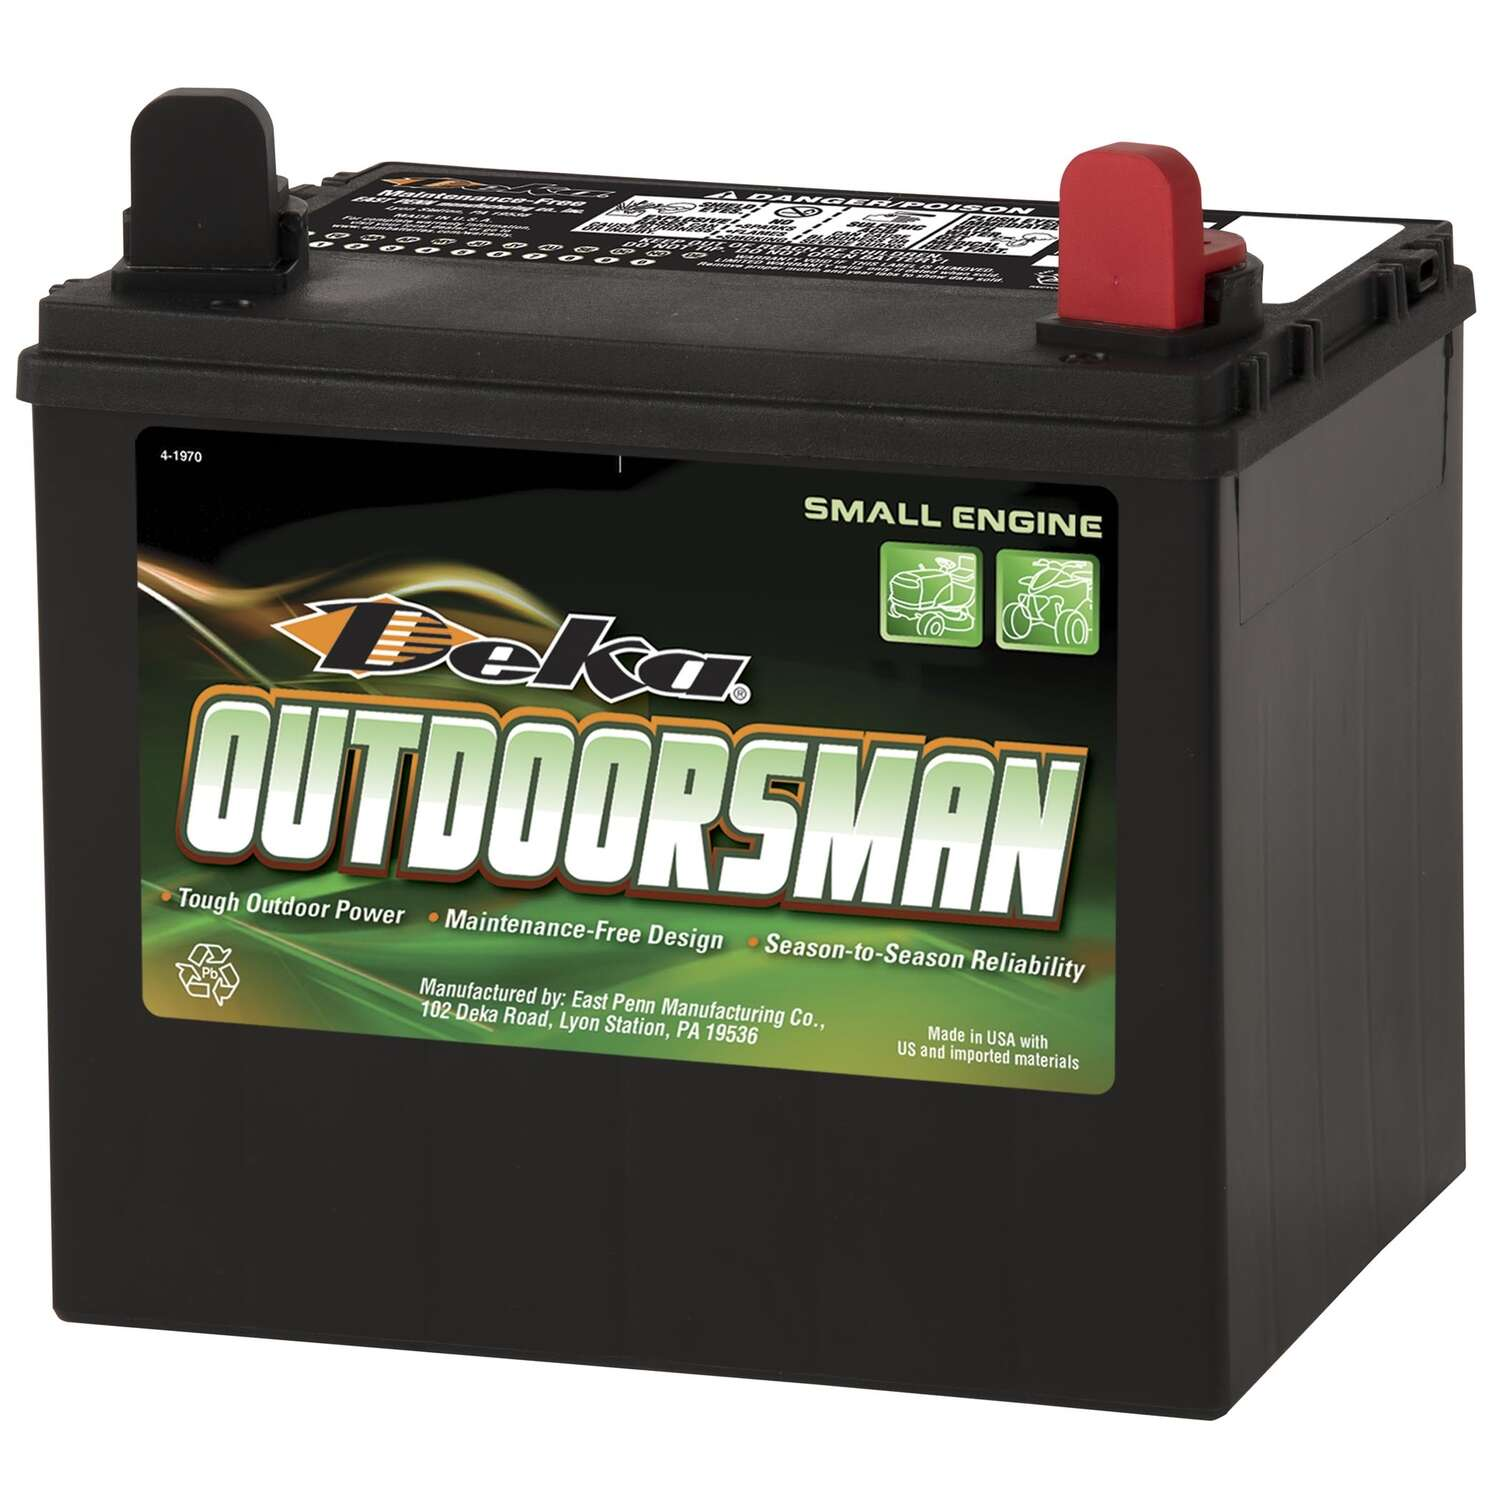 Deka  Outdoorsman  350 CCA 12 volt Small Engine Battery